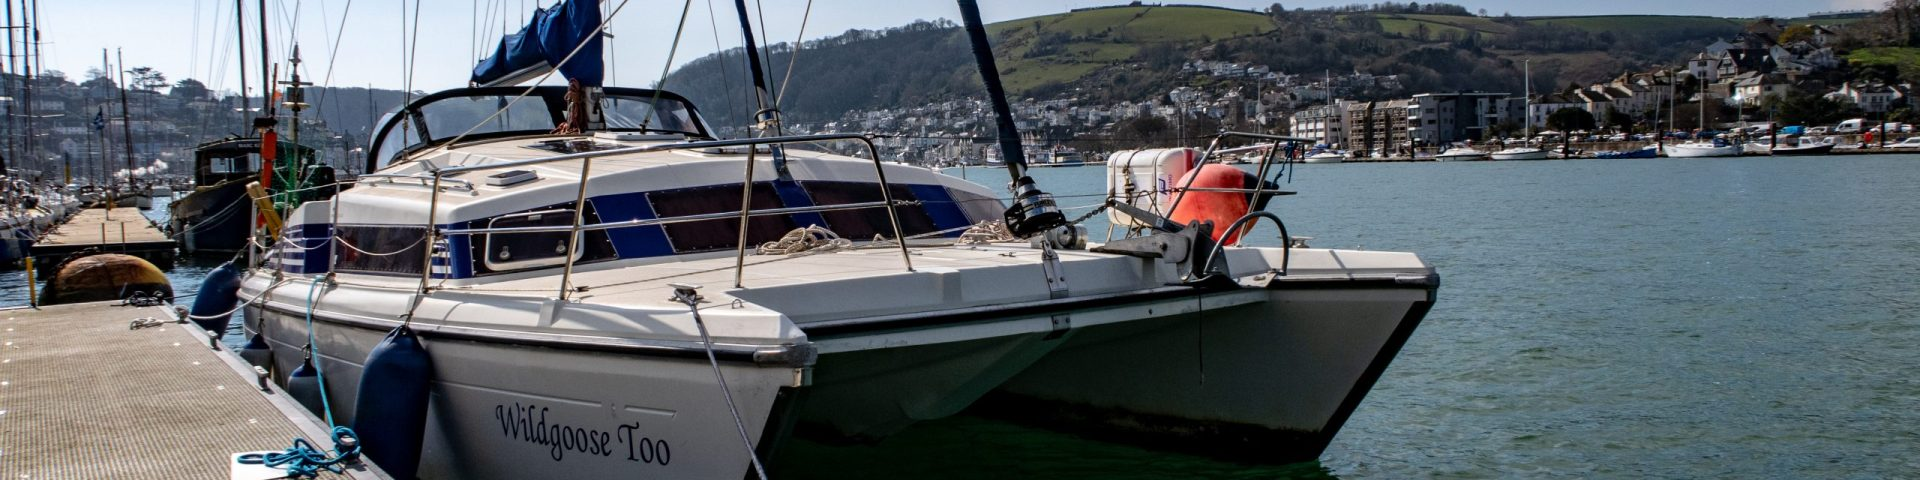 Prout Snowgoose Elite 37 ft Catamaran For Sale